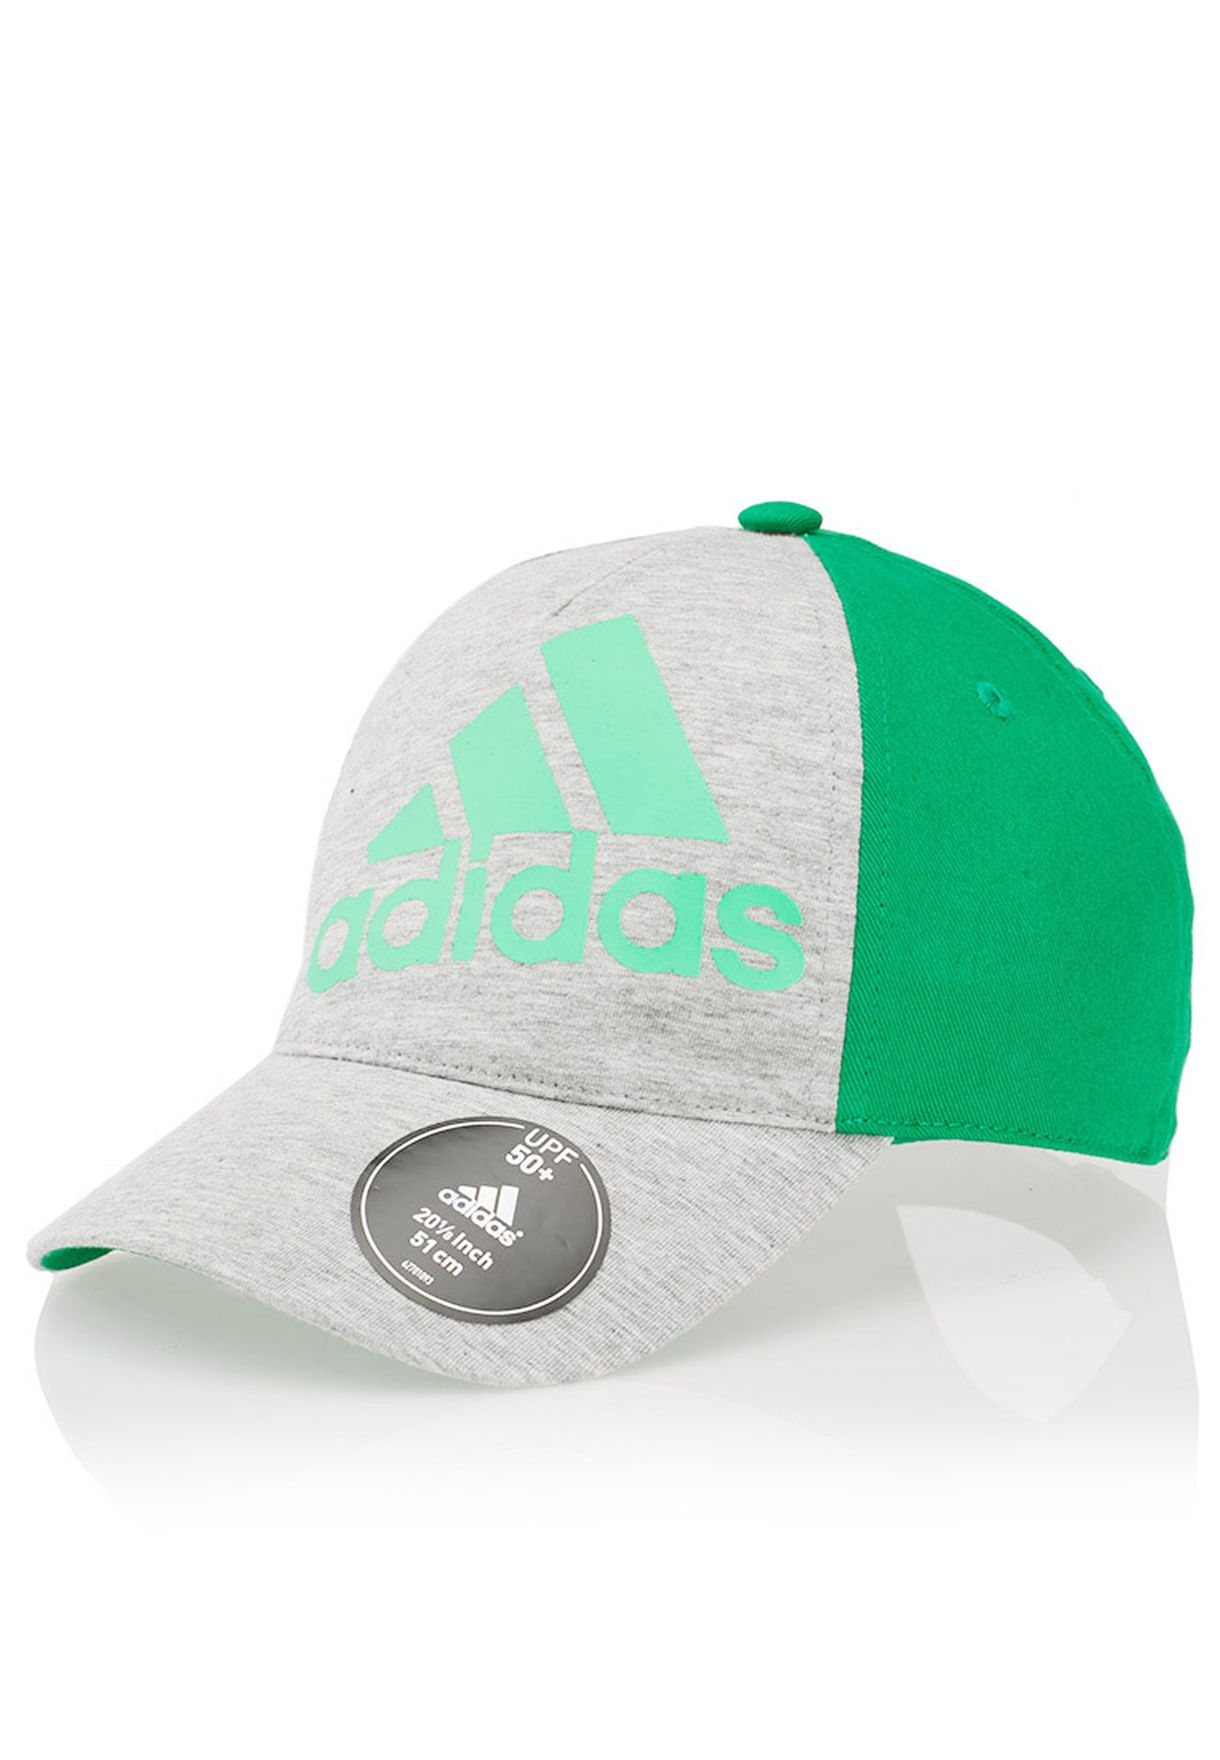 51153985a091d Shop adidas green Graphic Kids Cap S15655 for Kids in UAE - AD476AC47NSQ